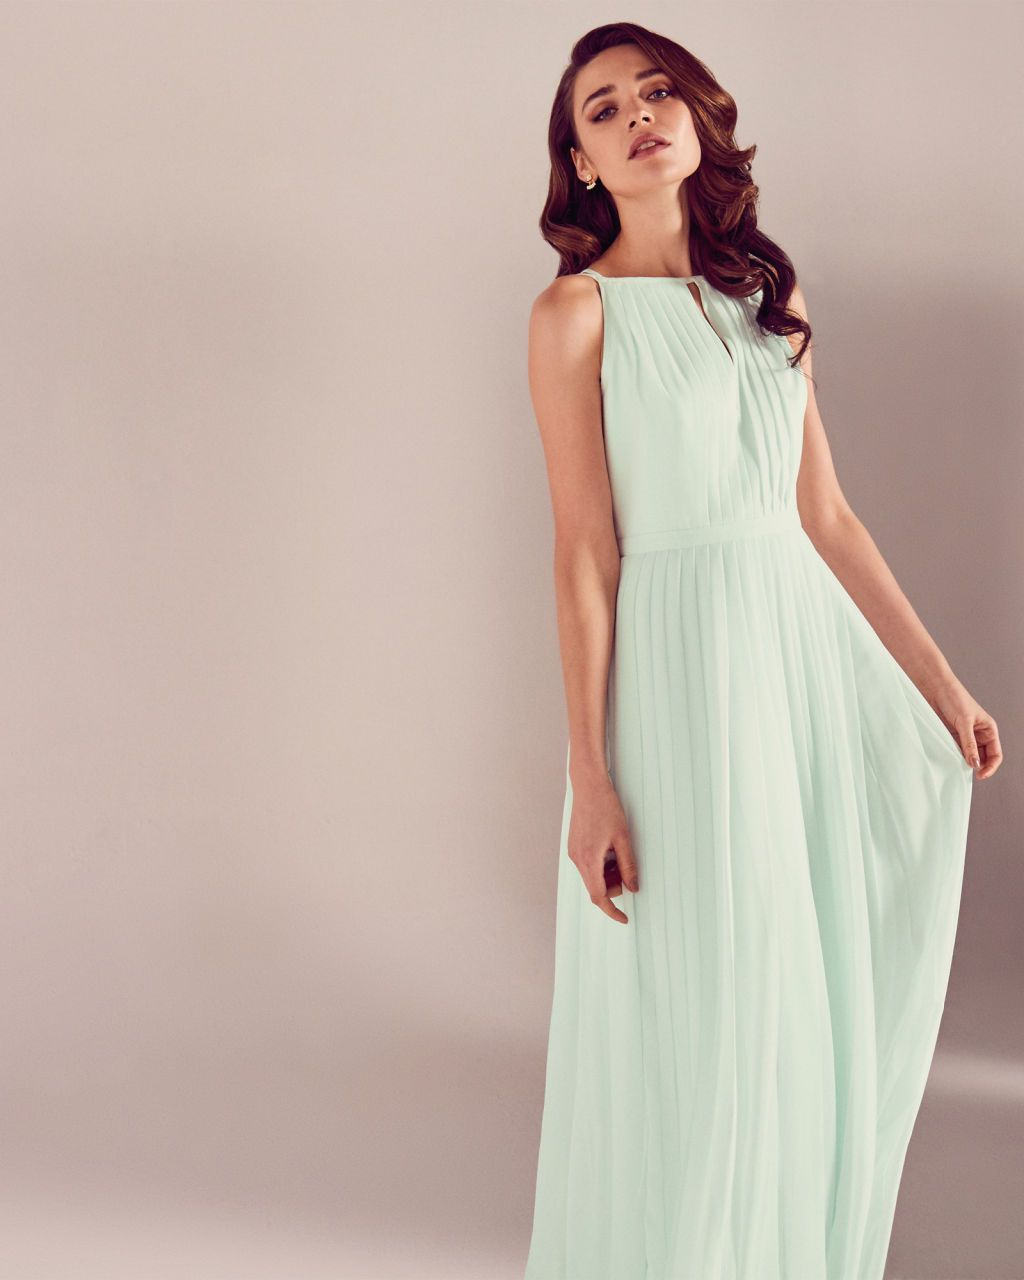 a95d1ac1224782 Ted Baker Mint Green Maxi Dress